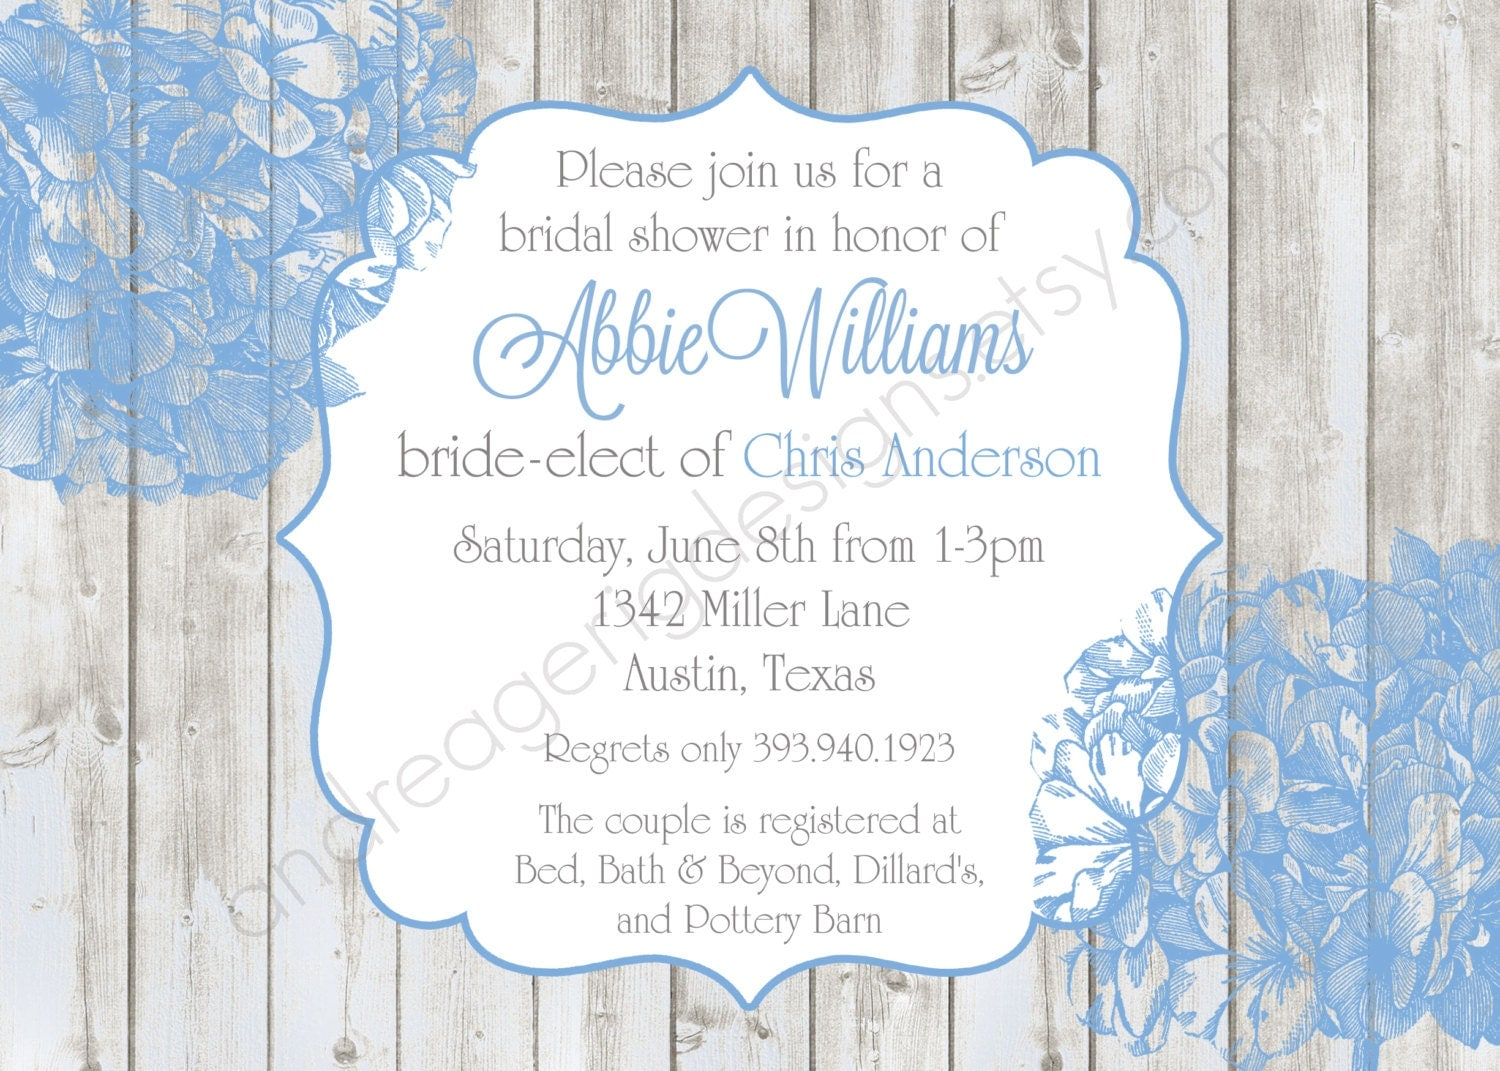 Bridal Shower Invitations Templates Microsoft Word Bridal Shower .  Invitation Templates Microsoft Word